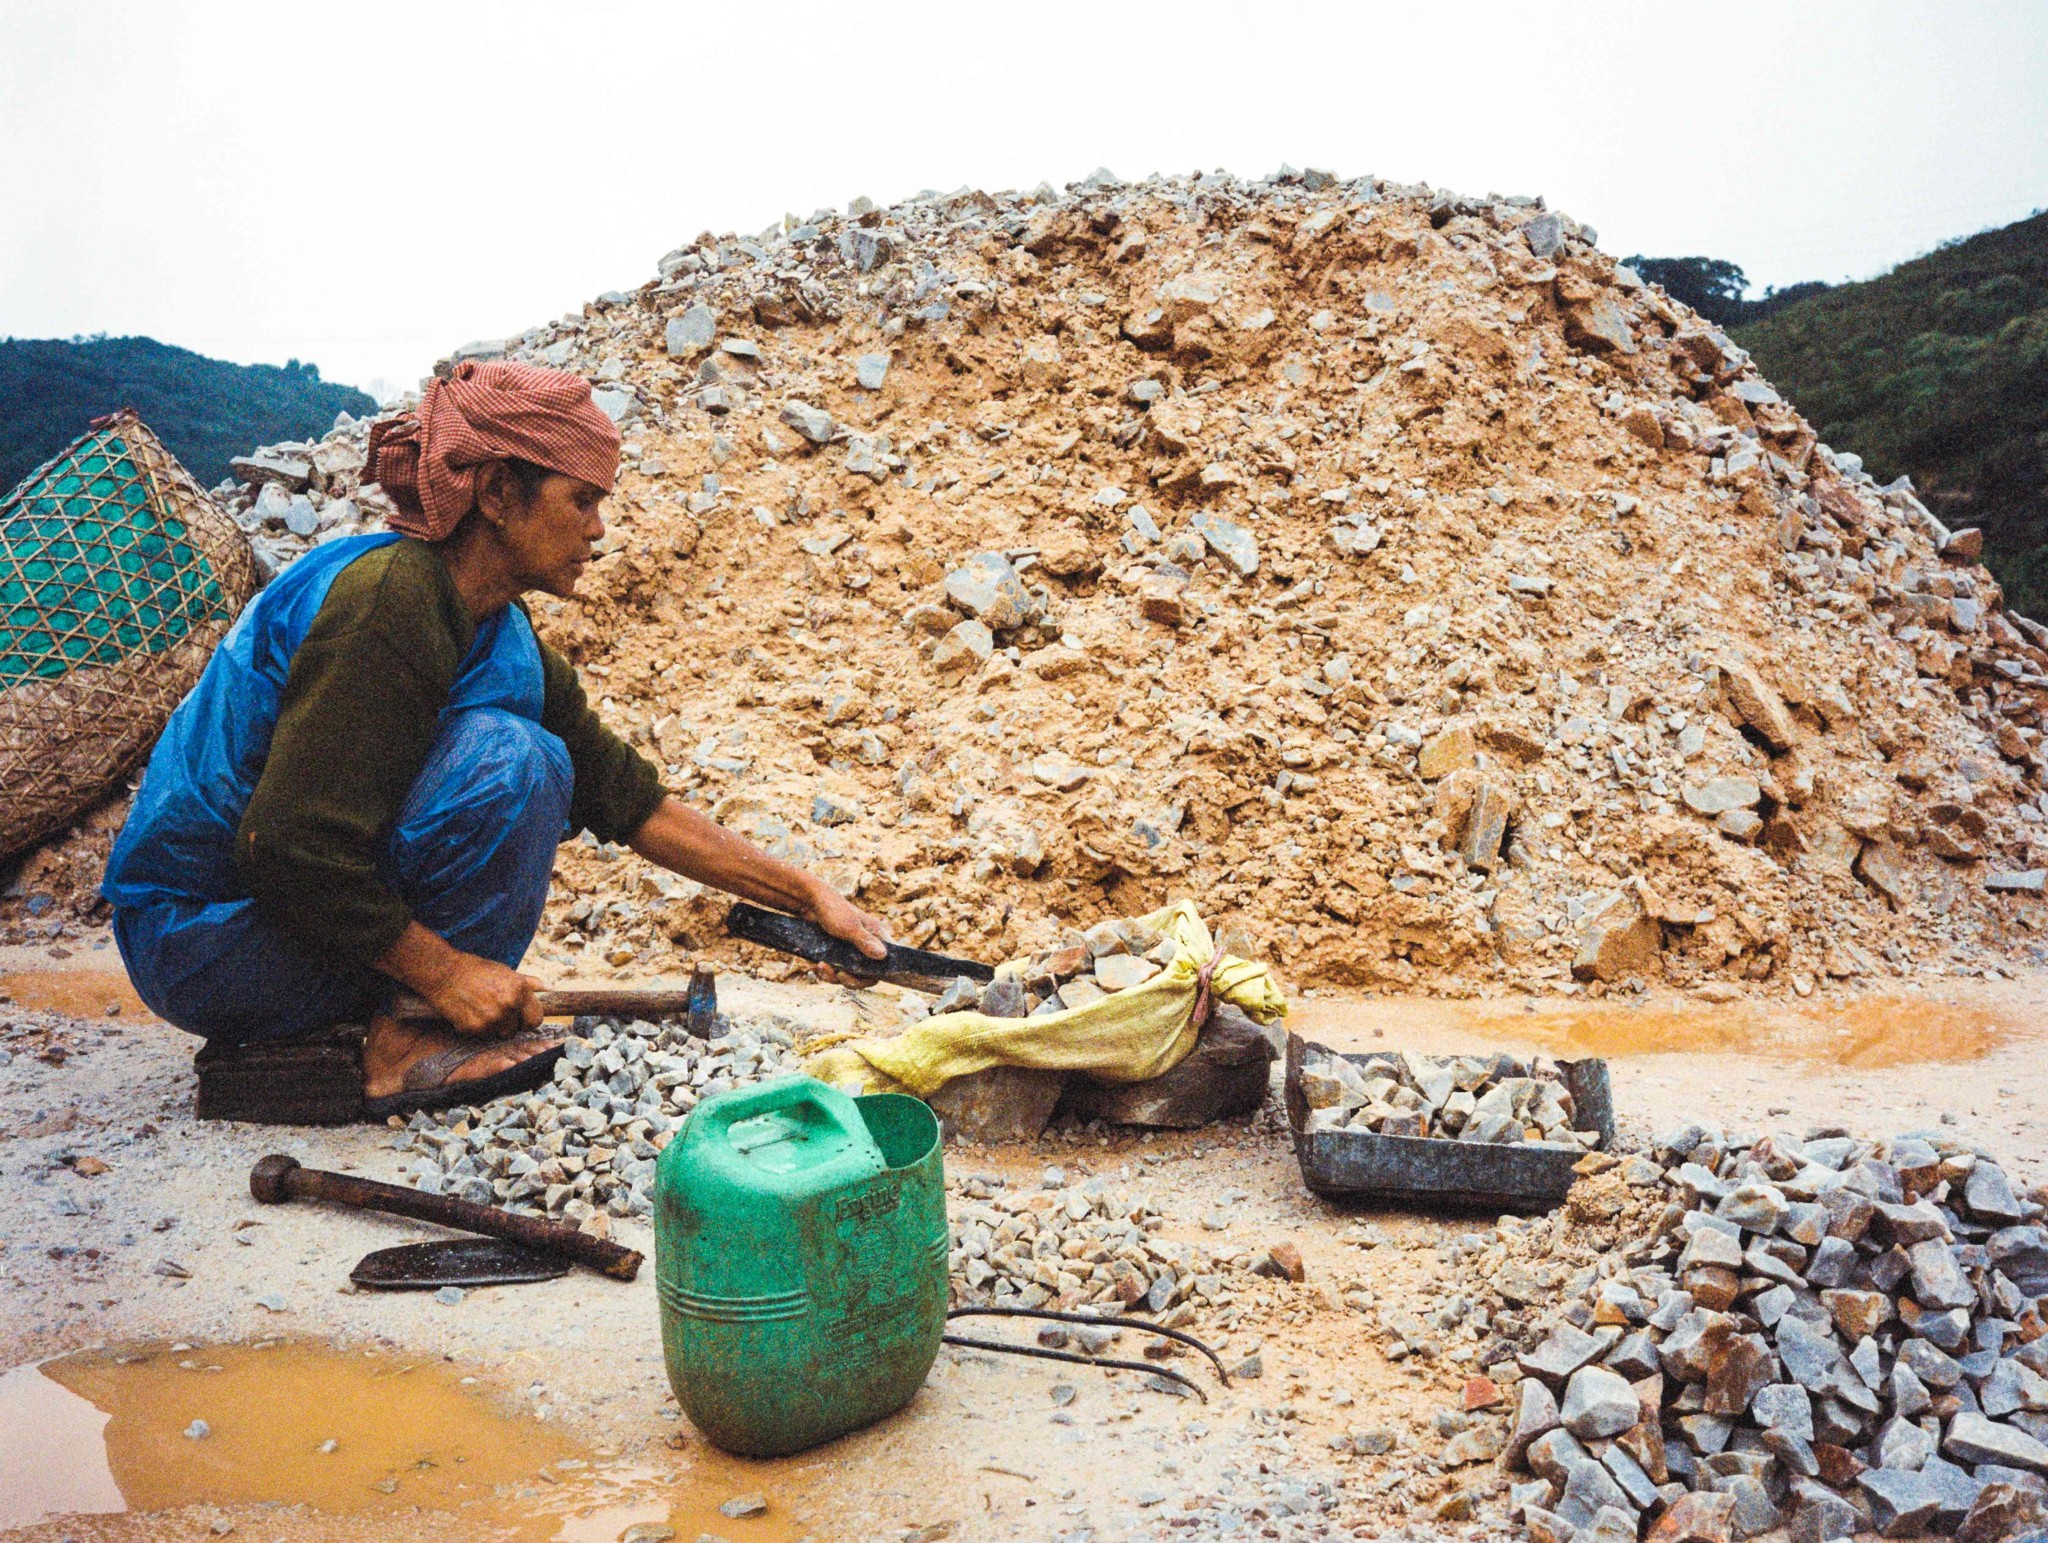 For this back-breaking work - 12 hours a day, 6 days a week - the 'nong shain maw' are paid around $2 a day.